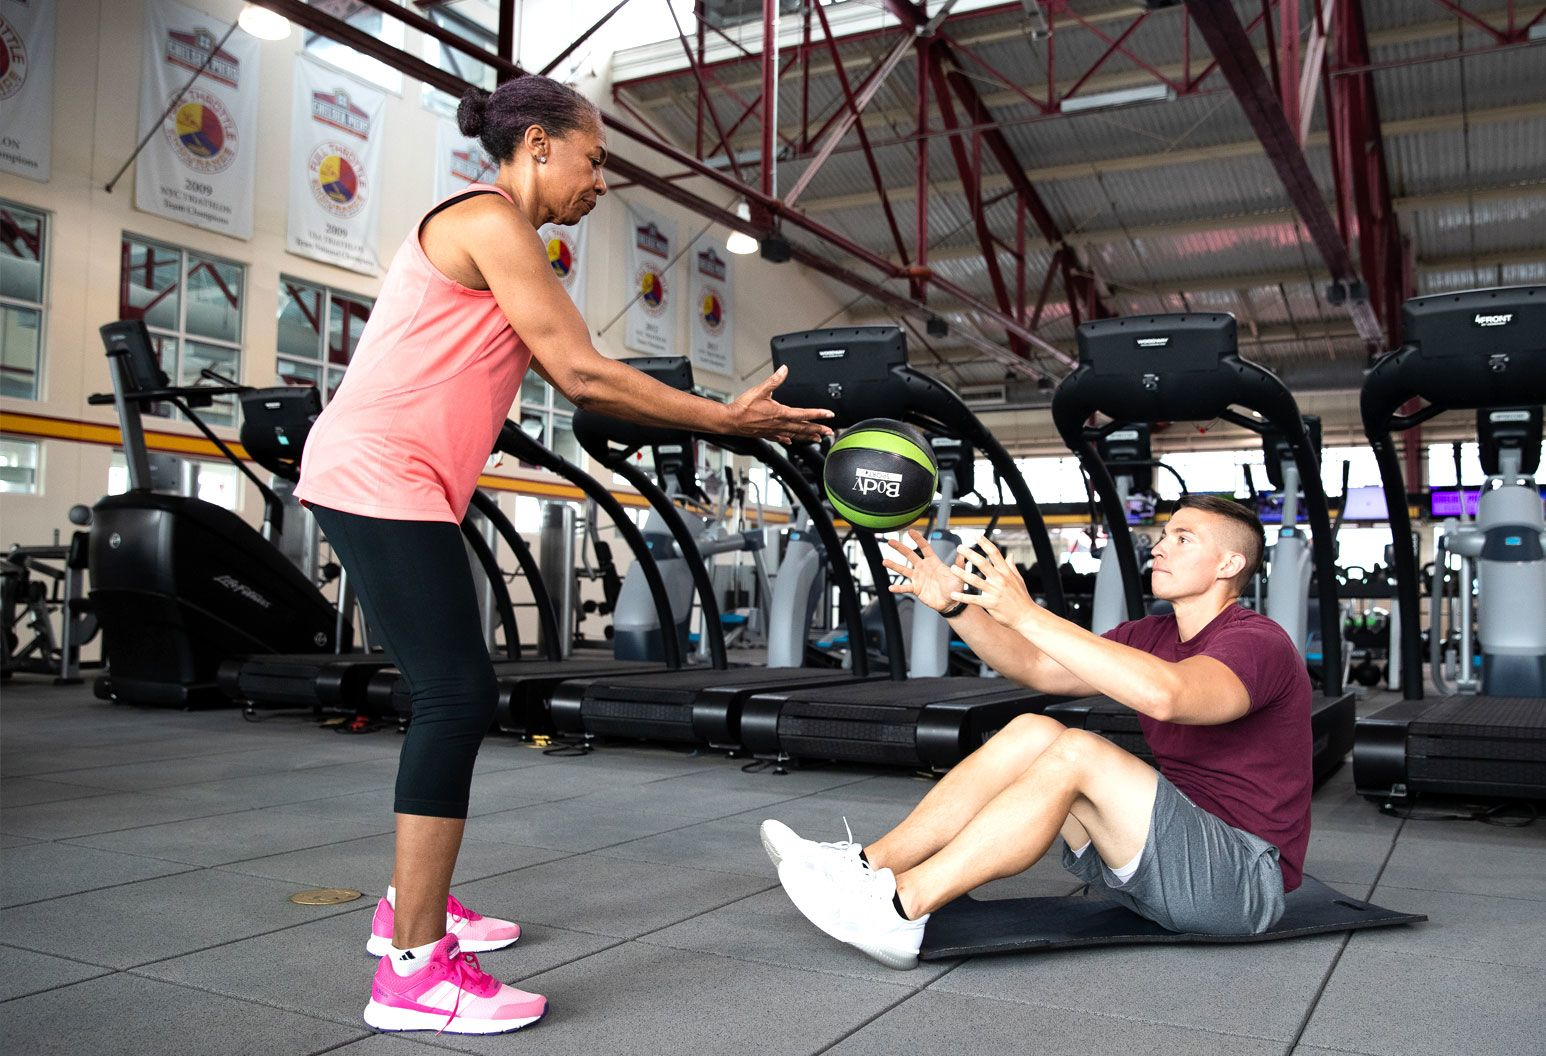 A young male and middle-aged female are working out together in a gym. The woman throws a work-out ball to the man.